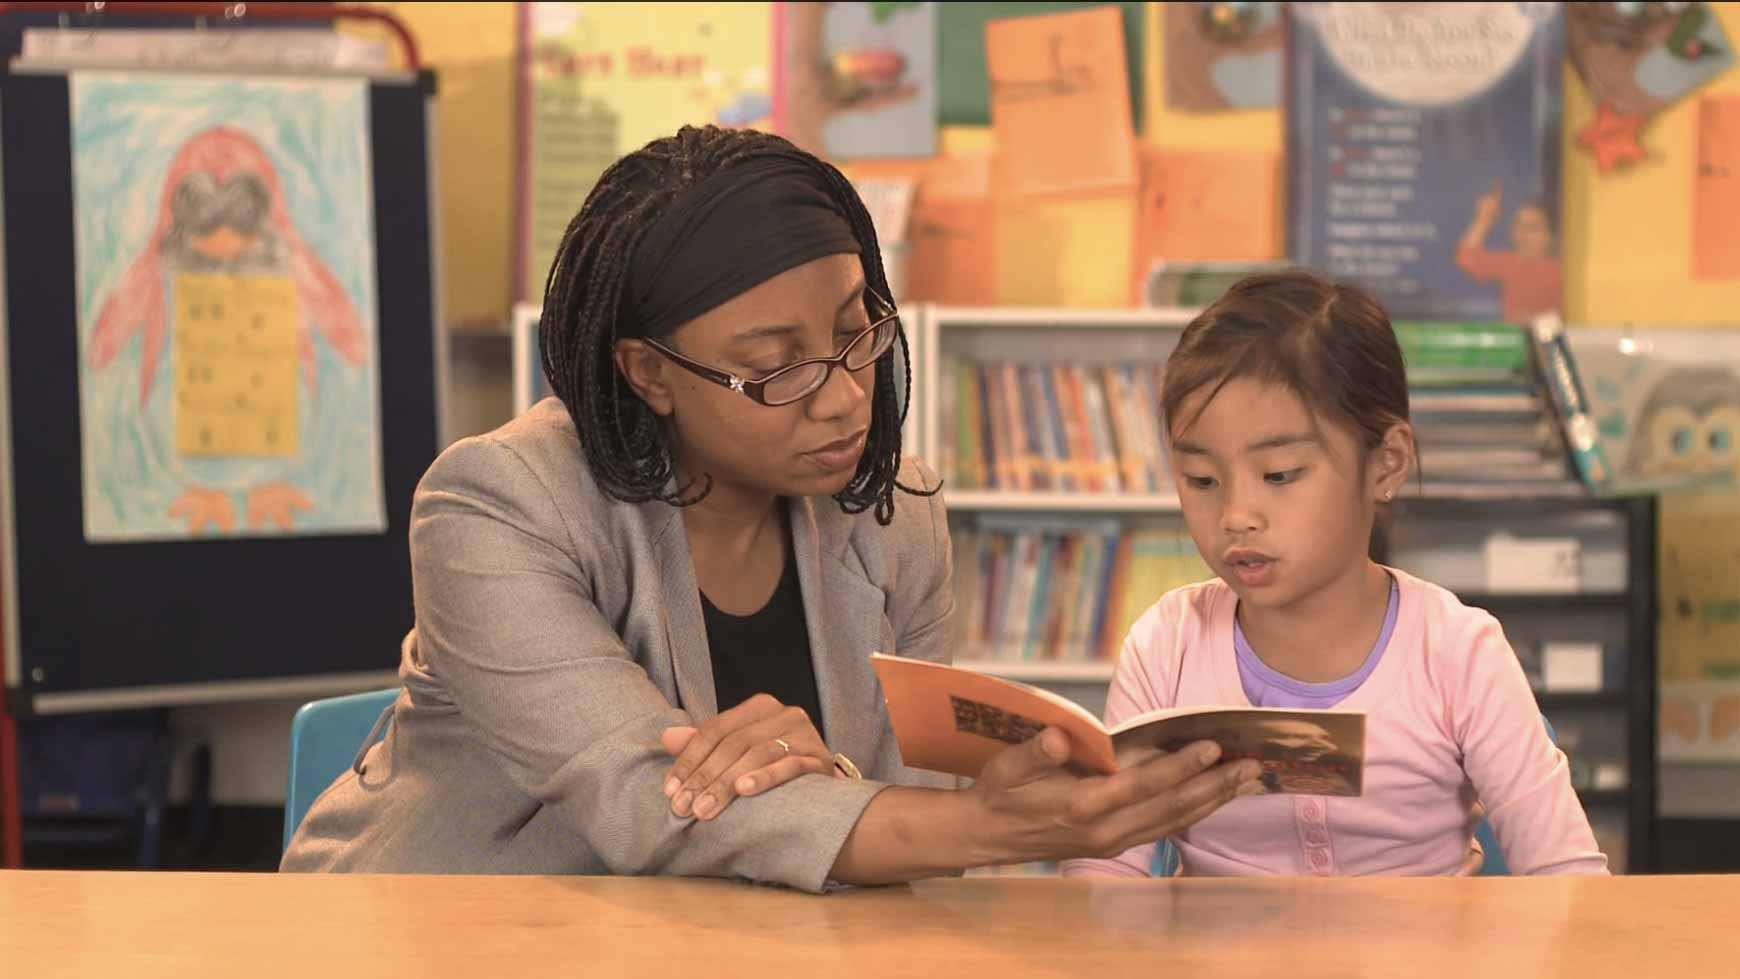 Video: Reading Fluency In First Grade Reading Skills In 1st Grade  Understood - For Learning And Thinking Differences